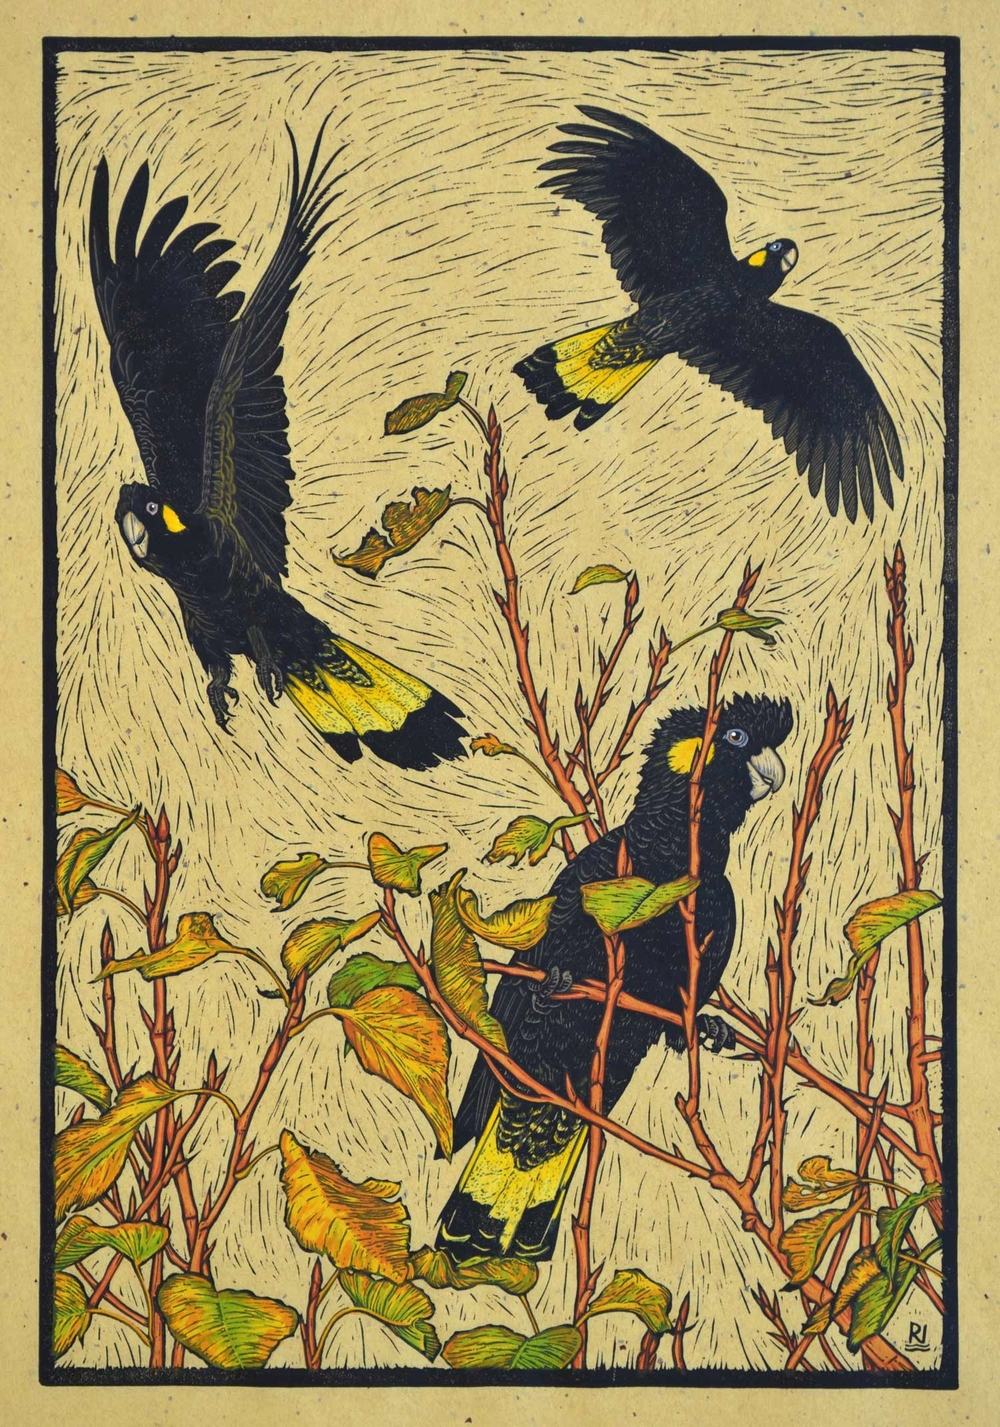 Three Yellow-tailed black Cockatoos (hand coloured version) 53.5 x 36.5 cm    edition of 50 Hand coloured linocut on handmade Japanese paper $950